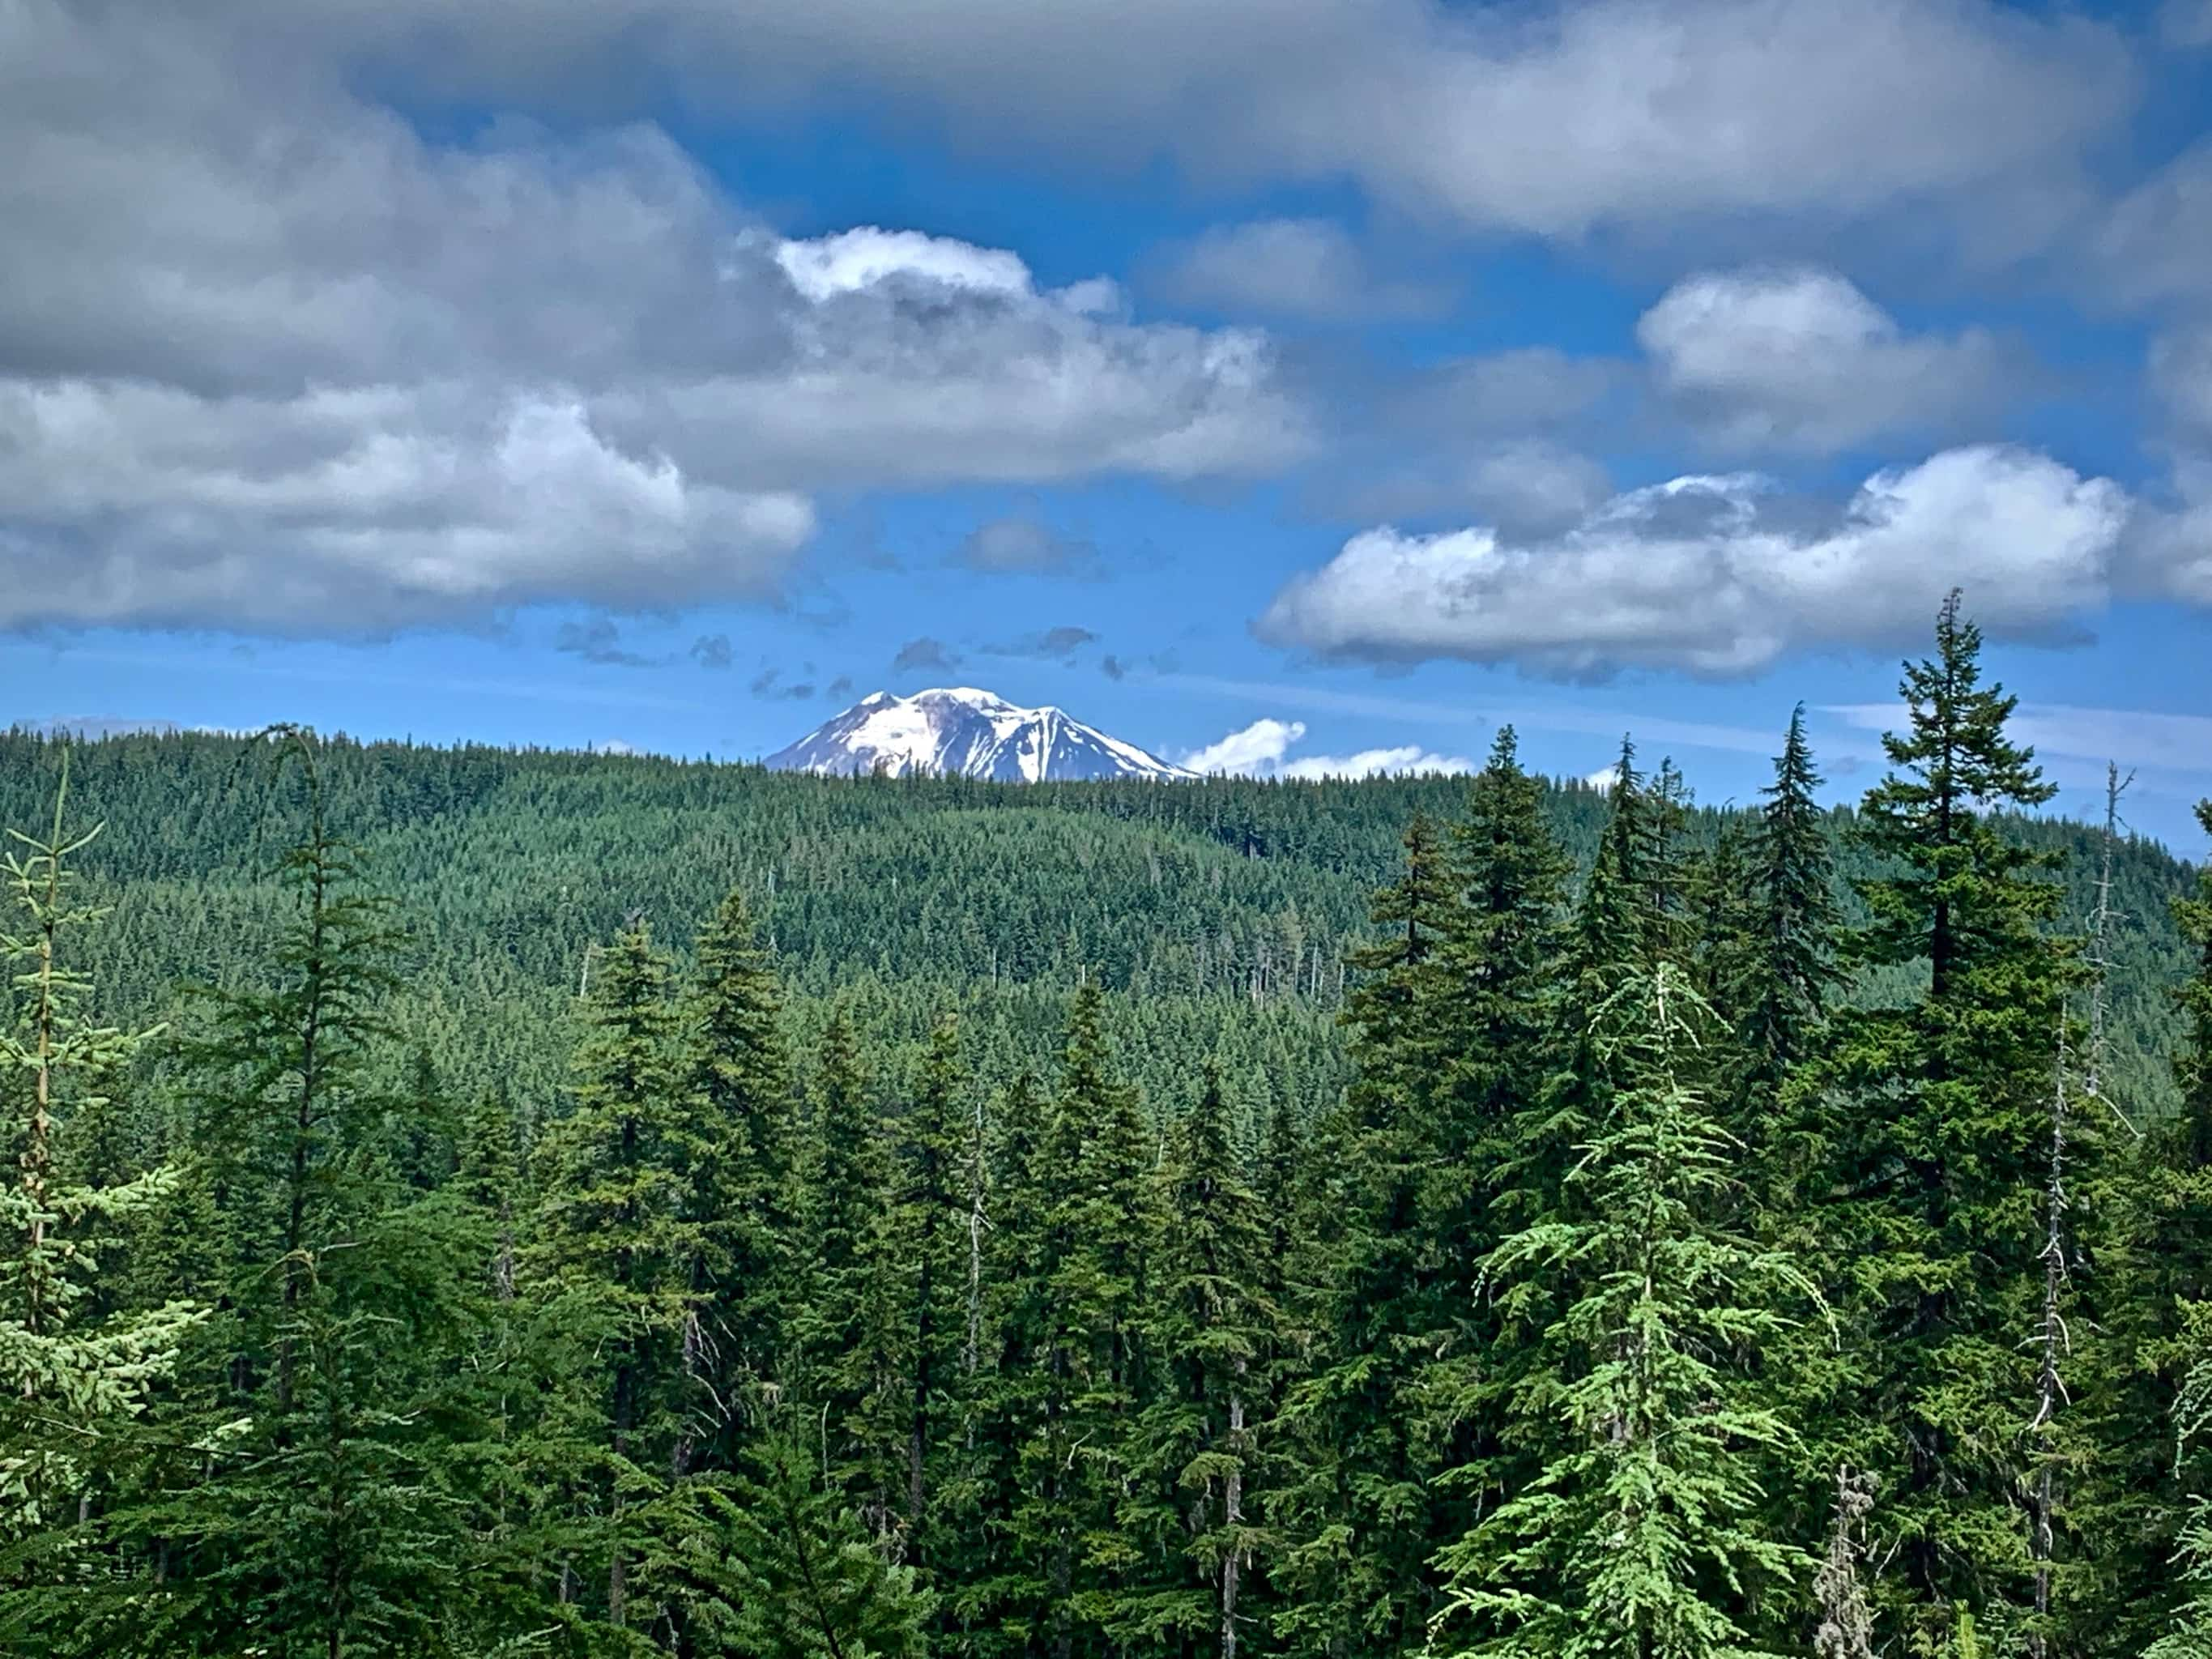 View of Mt. Adams from NF-60 Carson / Guler road in Gifford Pinchot National forest.